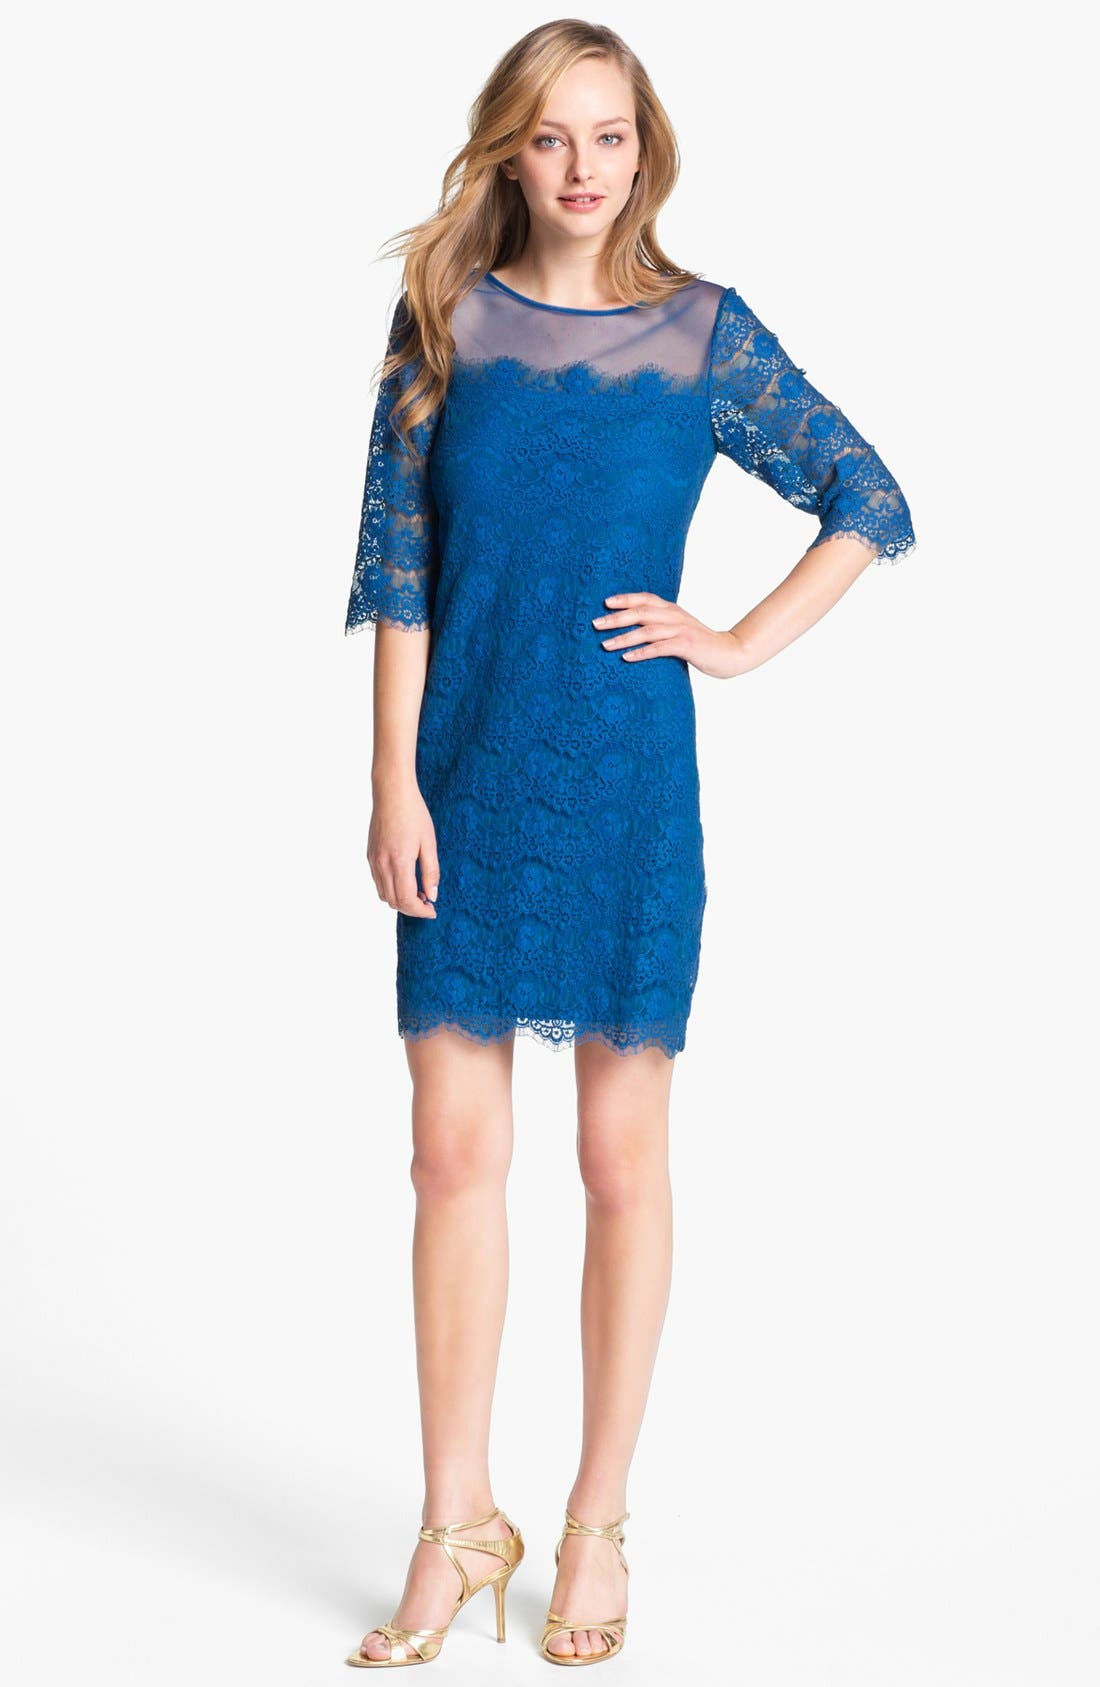 Alternate Image 1 Selected - Max & Cleo 'Lillian' Scalloped Lace Minidress